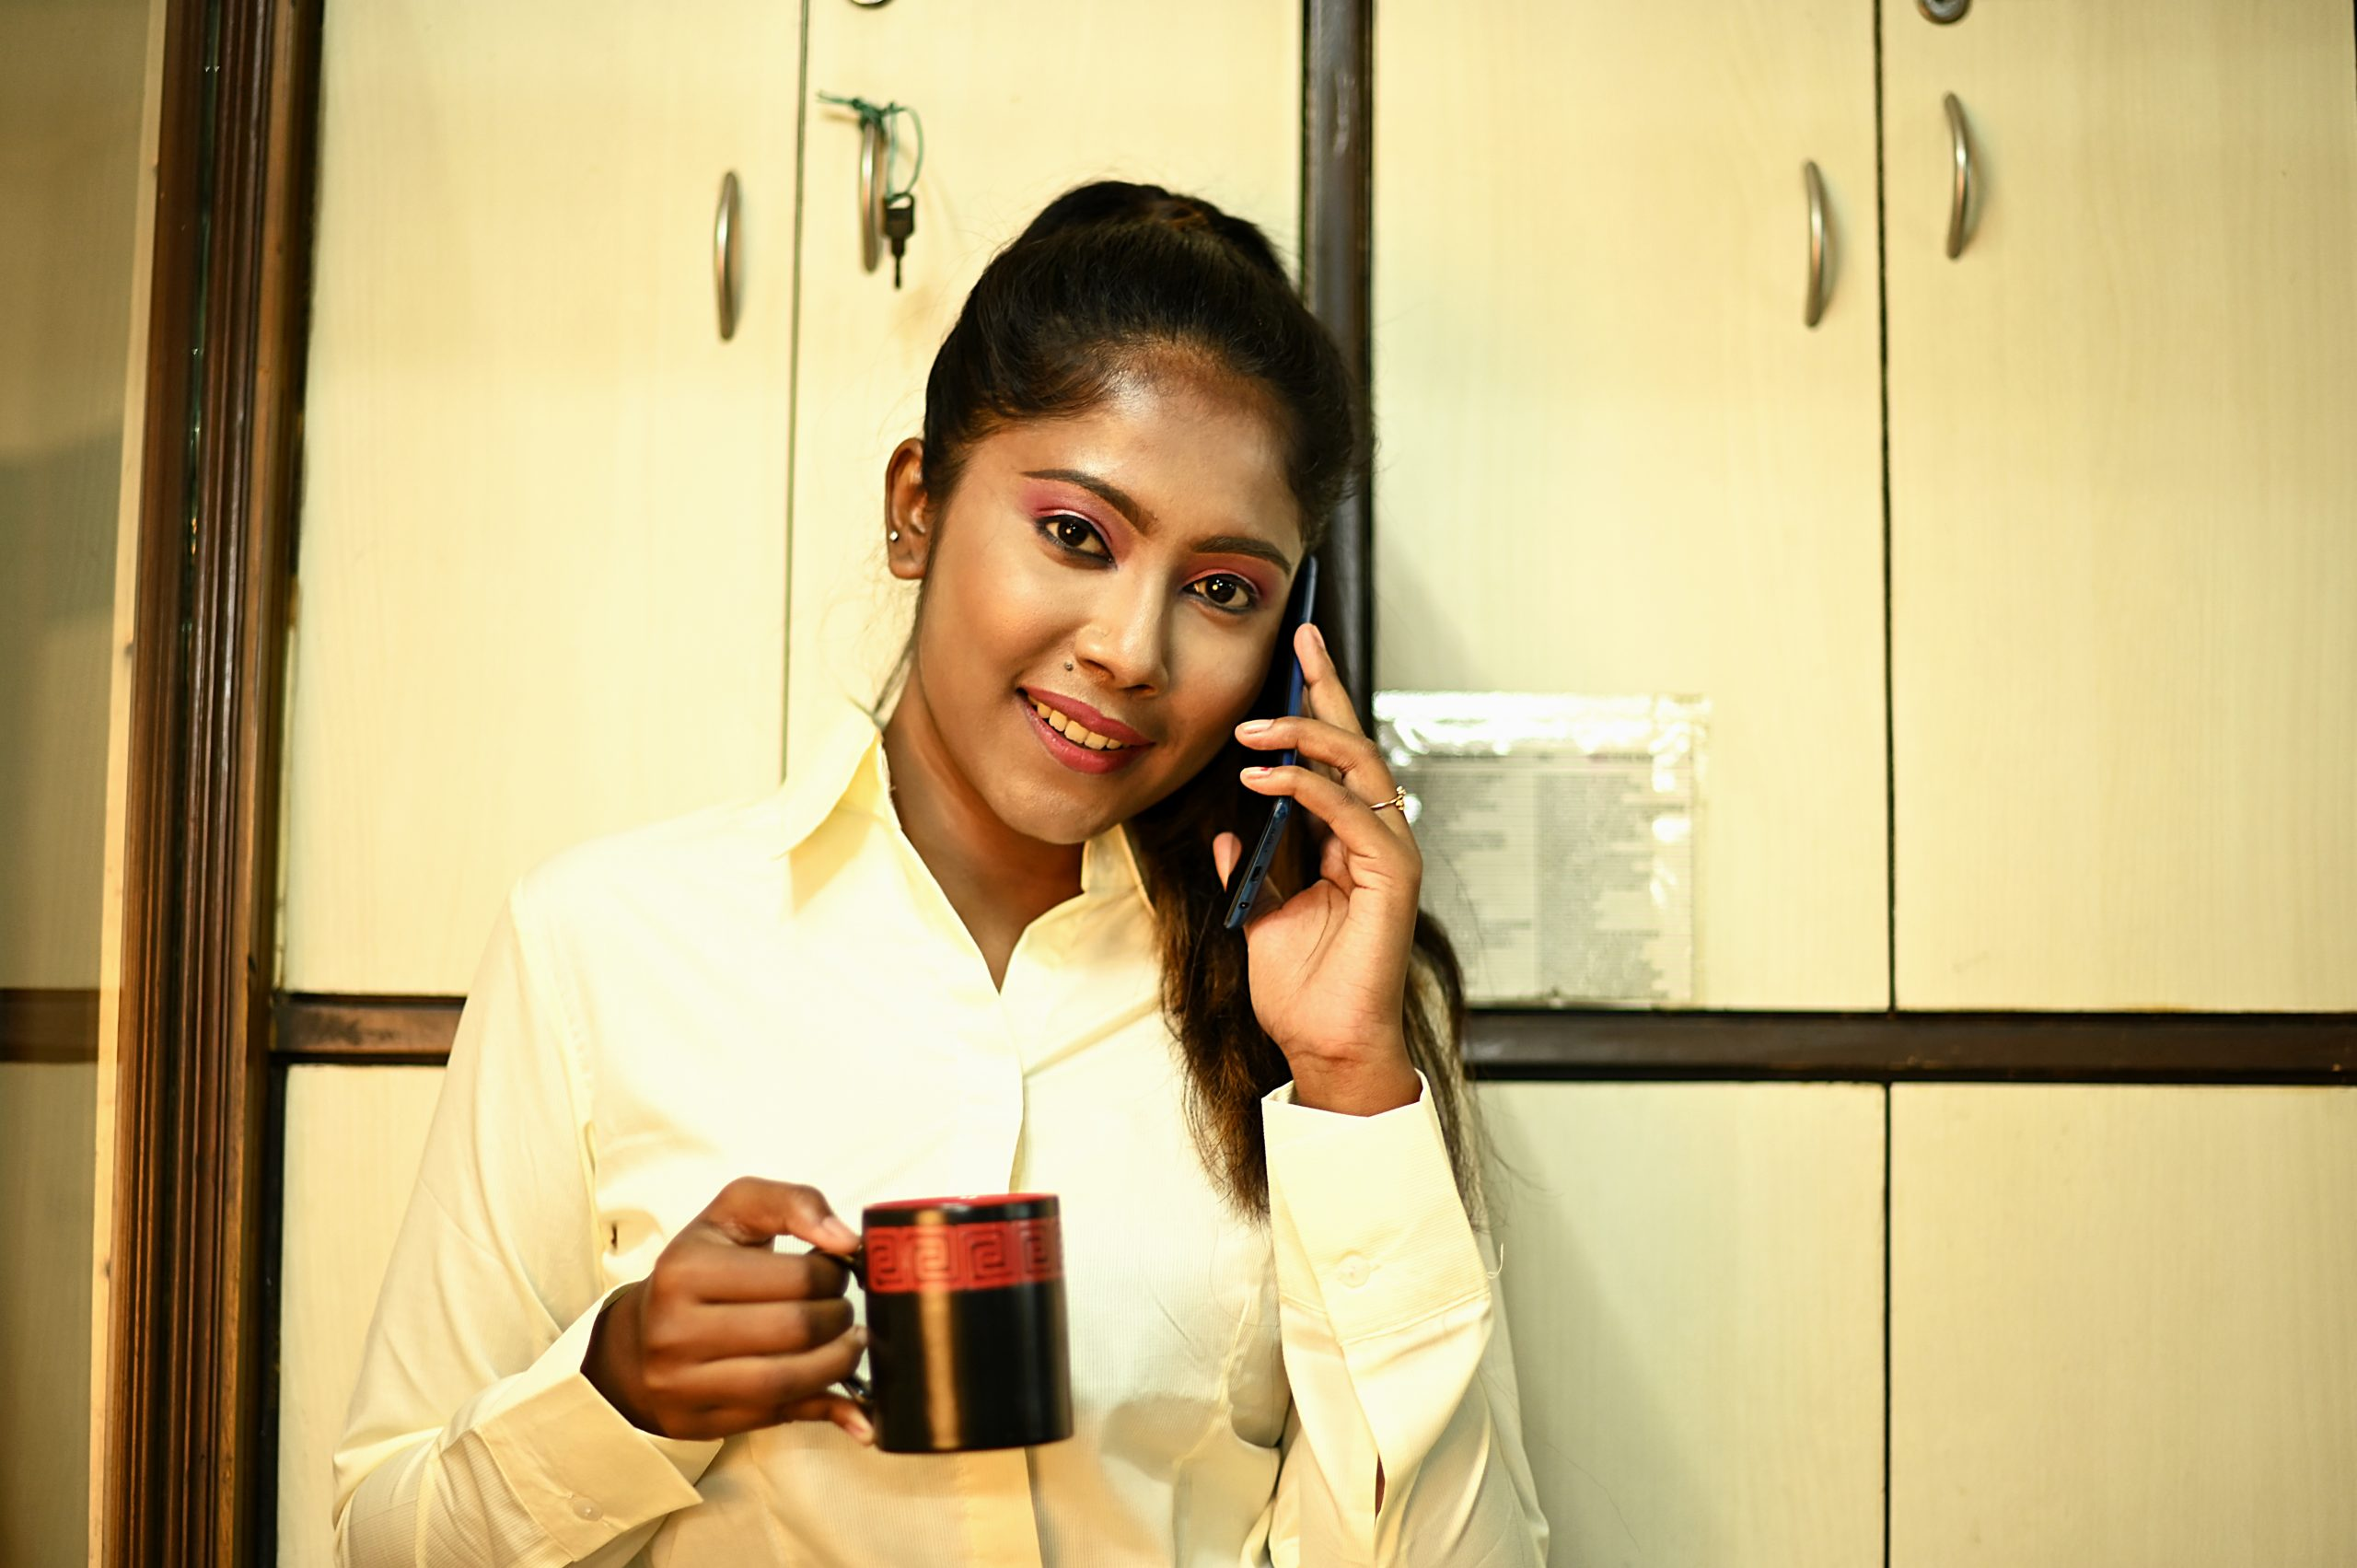 In a call